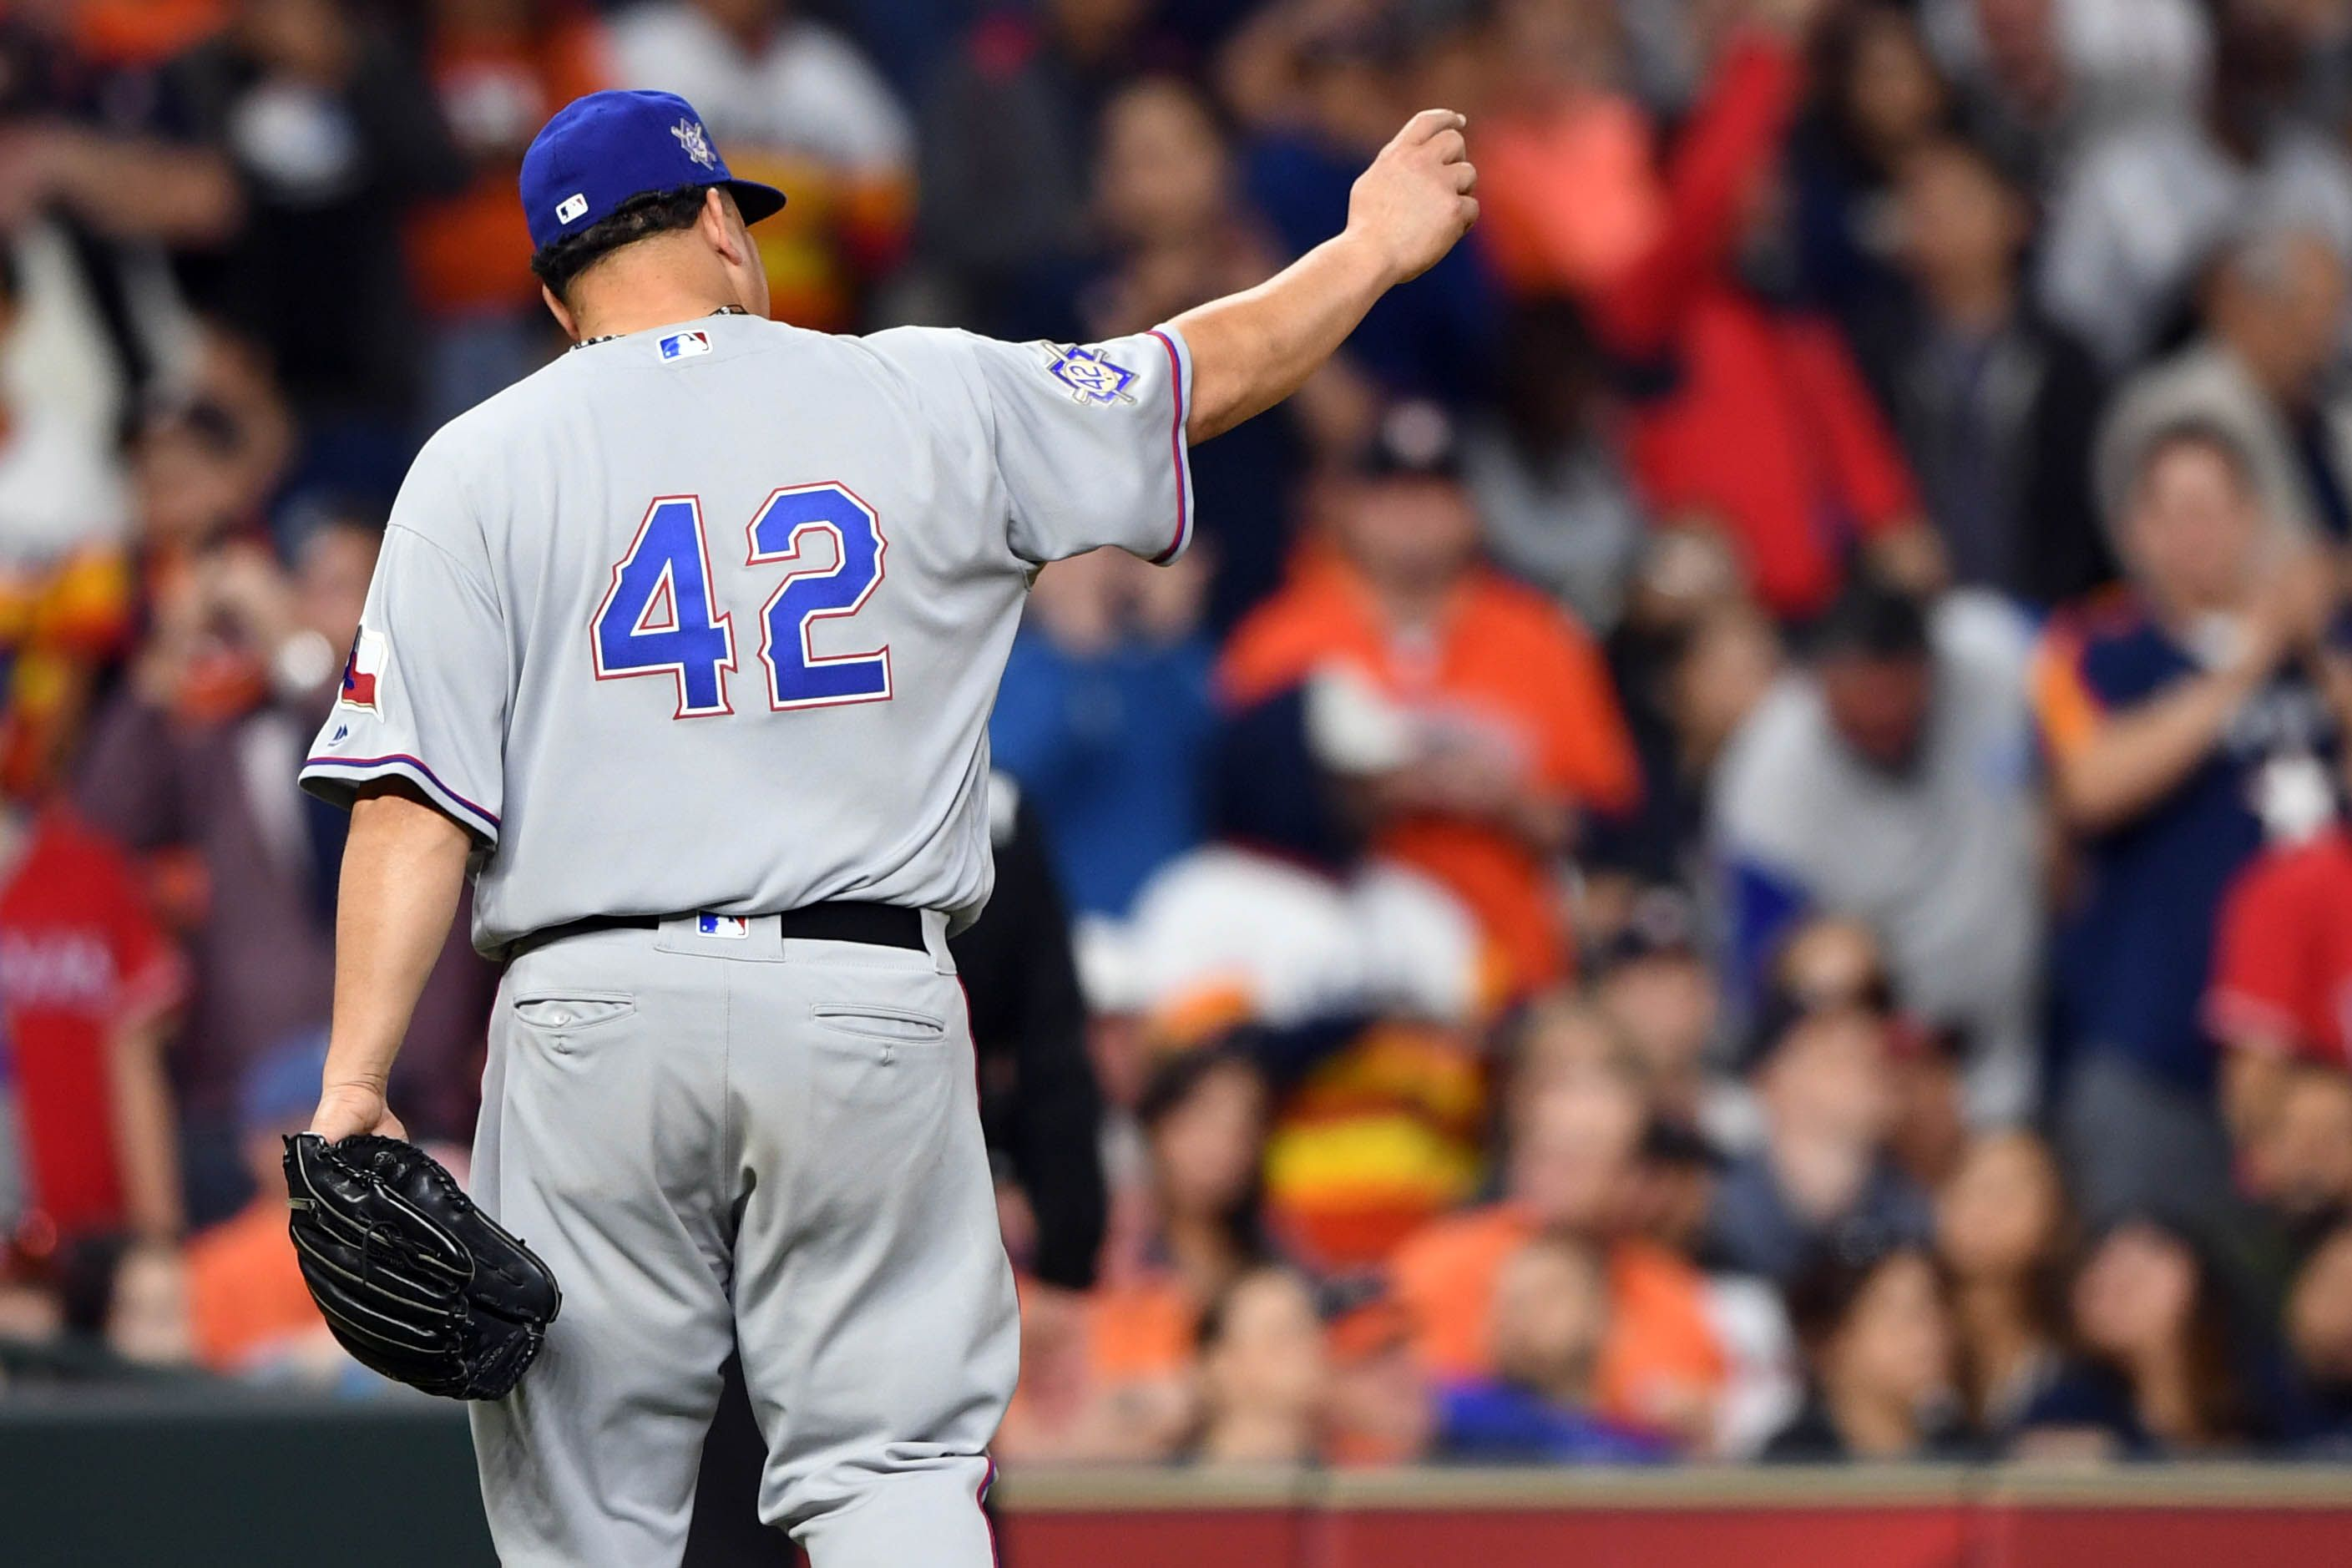 Bartolo Colon takes perfect game into 8th inning, Rangers beat Astros 3-1 in 10